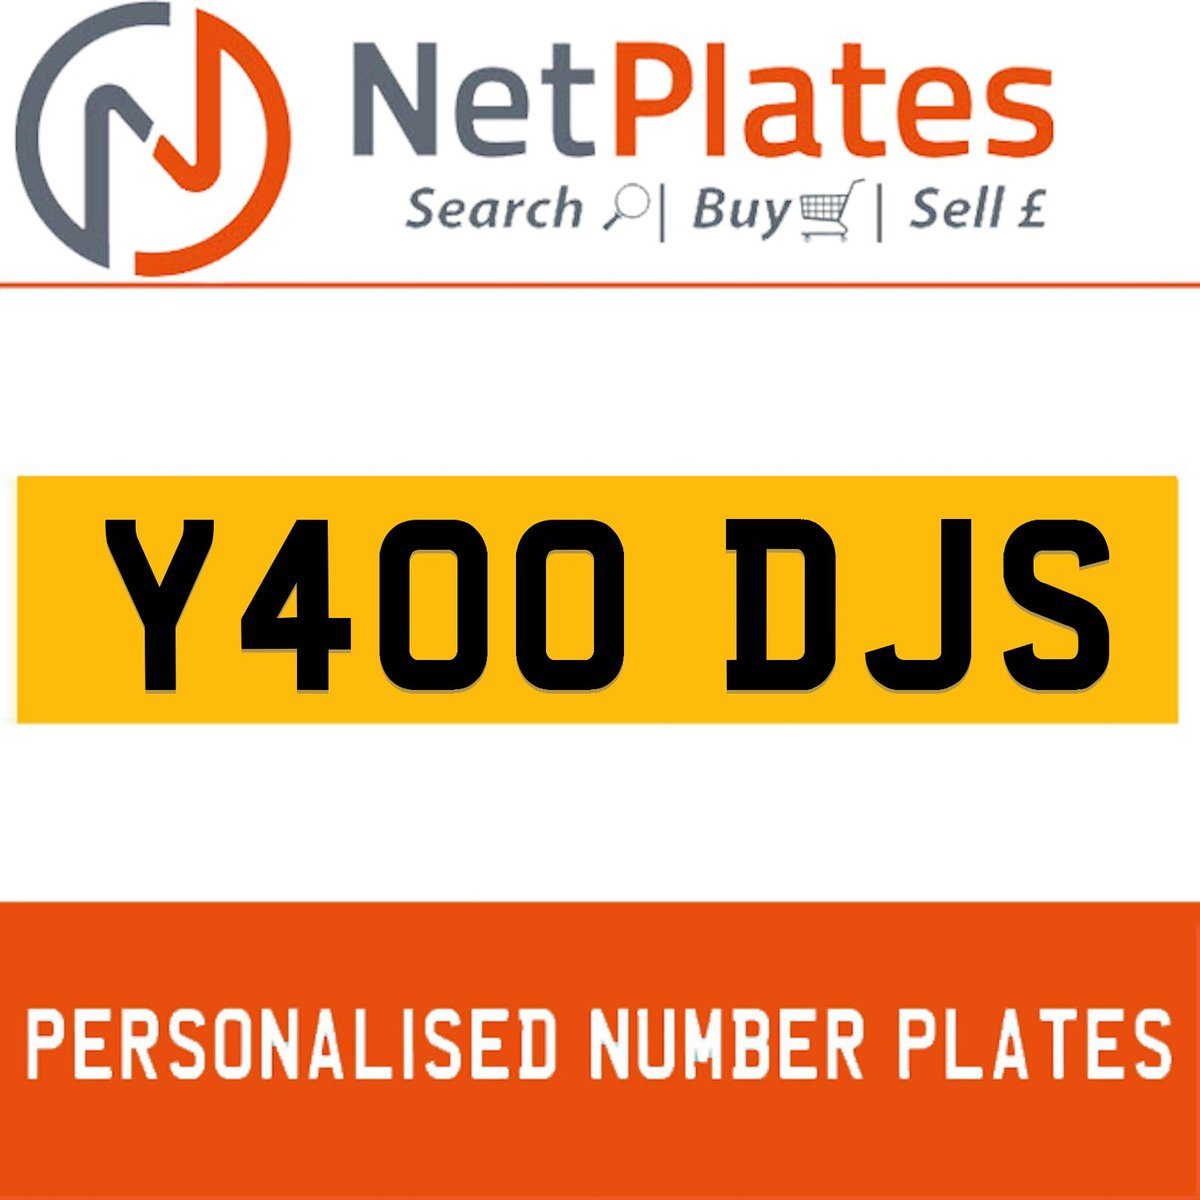 Y400 DJS PERSONALISED PRIVATE CHERISHED DVLA NUMBER PLATE For Sale (picture 1 of 5)